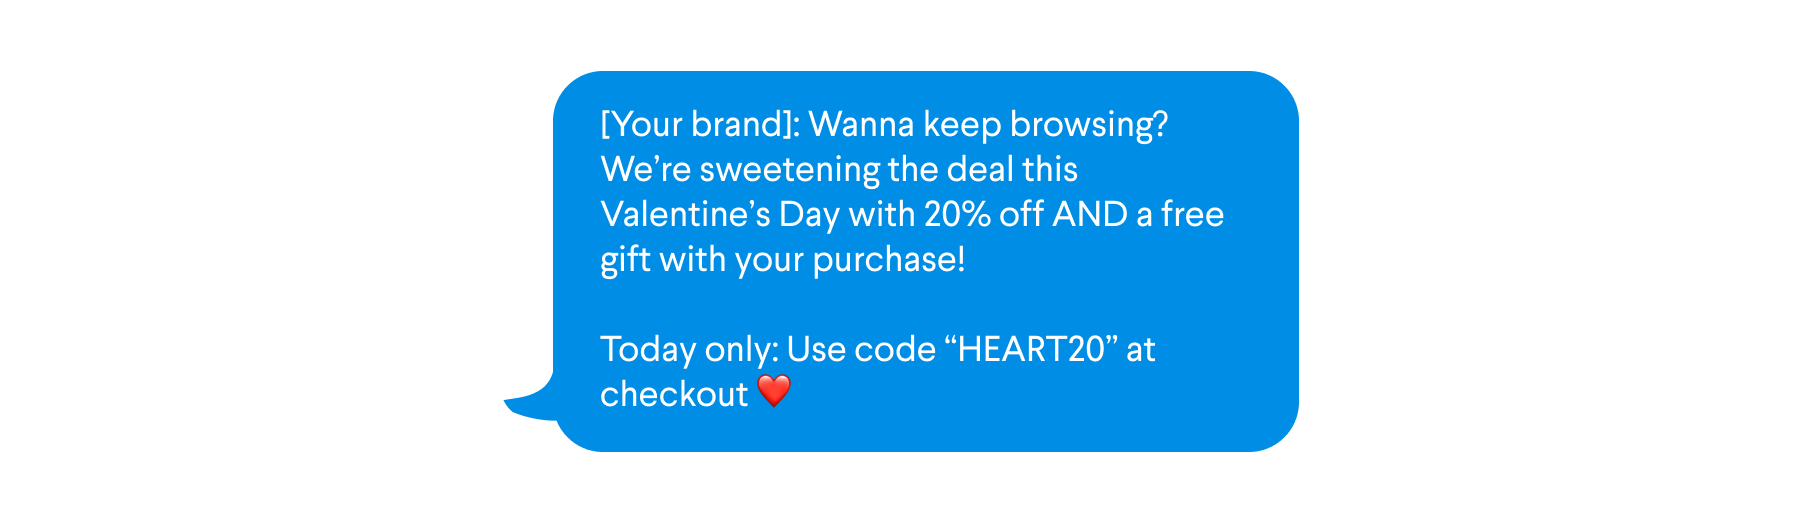 Non-Purchase Campaign- Free Gift with Purchase